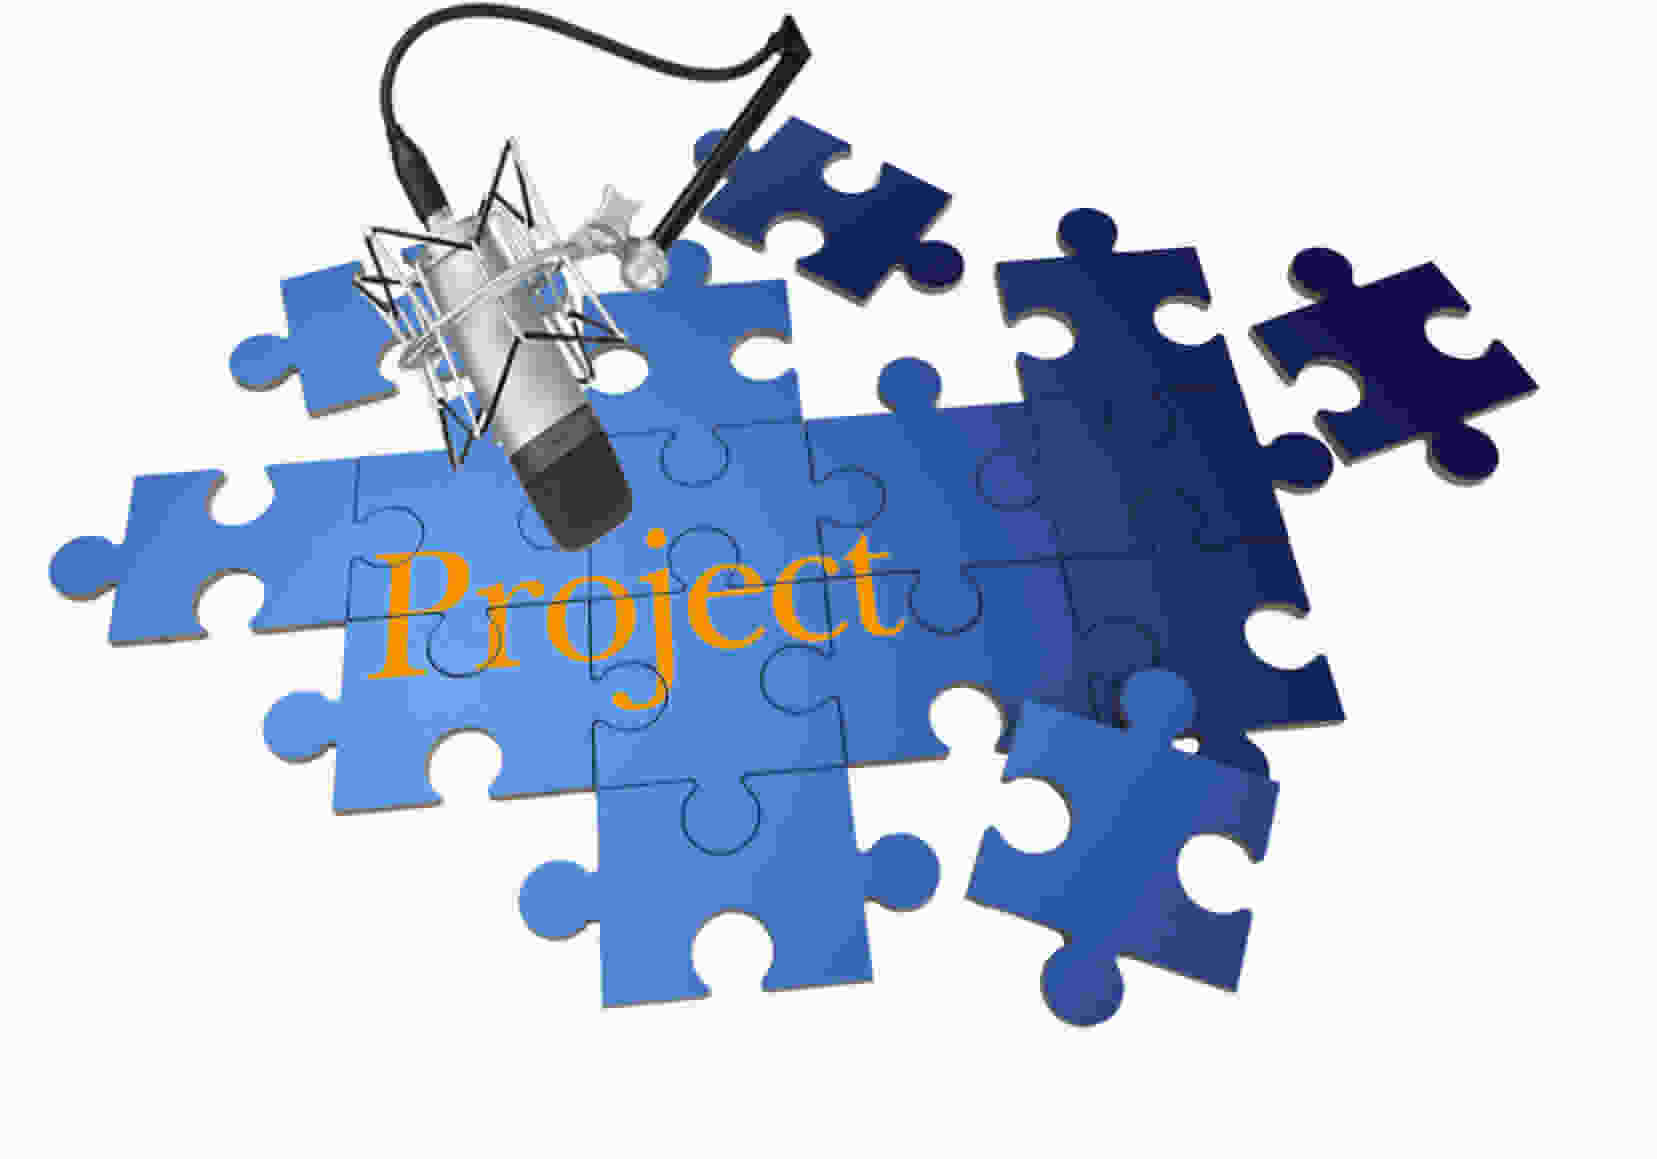 Voice talent project management from Todd Schick Productions Inc.